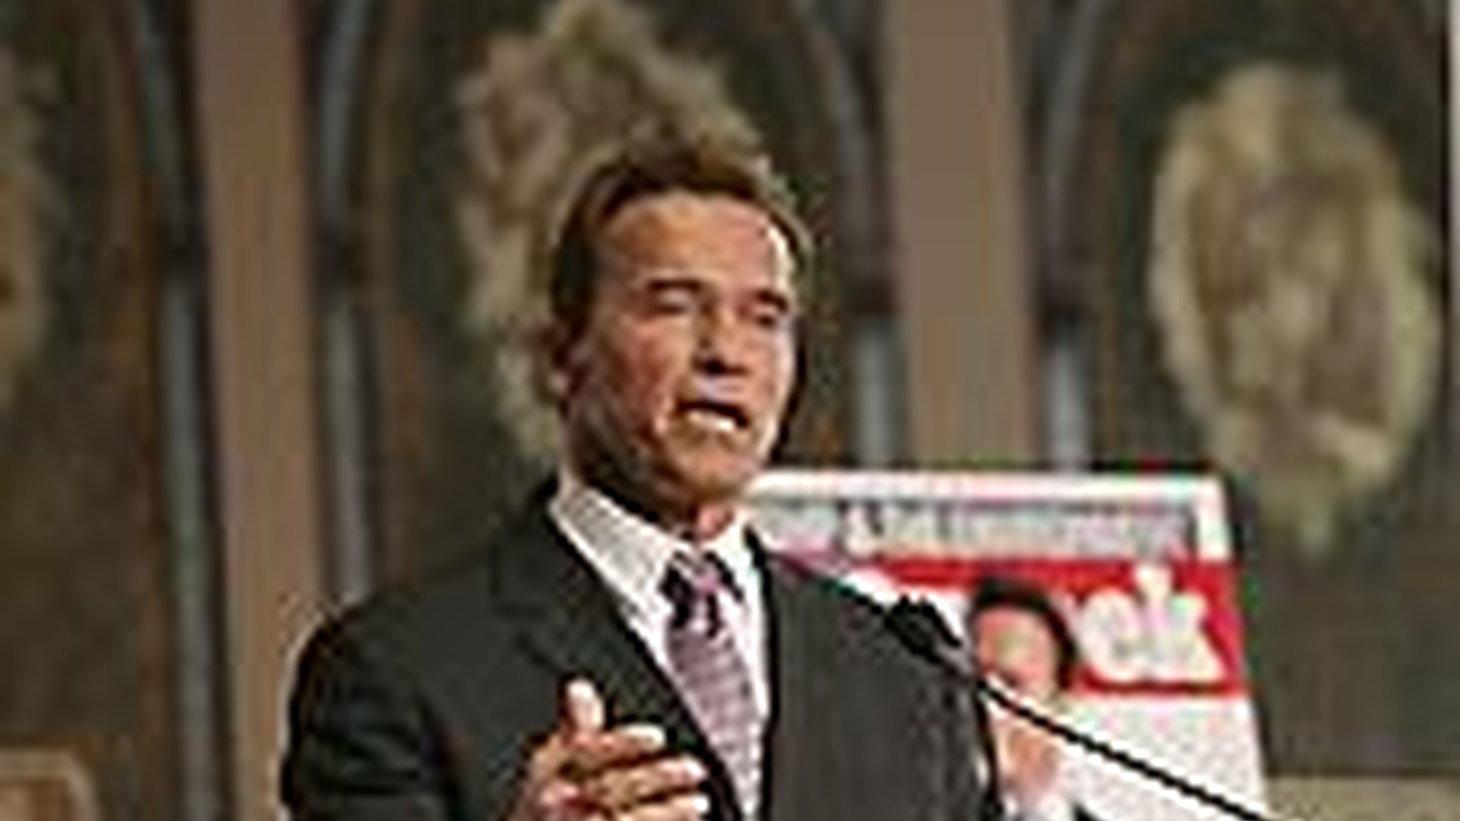 With no less than twelve TV news cameras and C-Span in the room today, Governor Schwarzenegger delivered the keynote address at a Washington conference on the environment.  We hear about going green without guilt. Also, a tent city at Los Angeles City Hall.